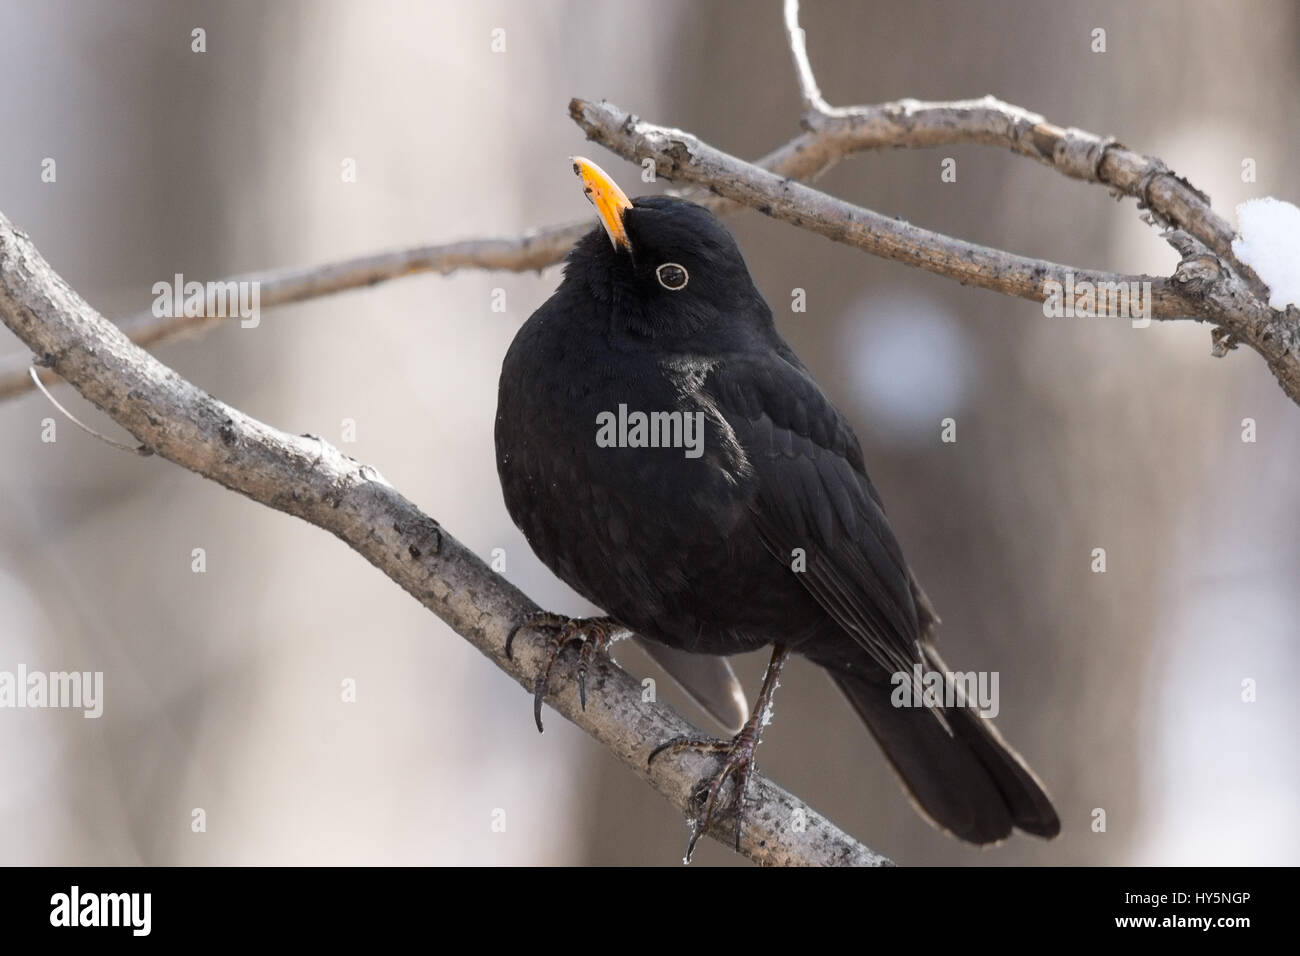 The photo shows a blackbird on a tree - Stock Image